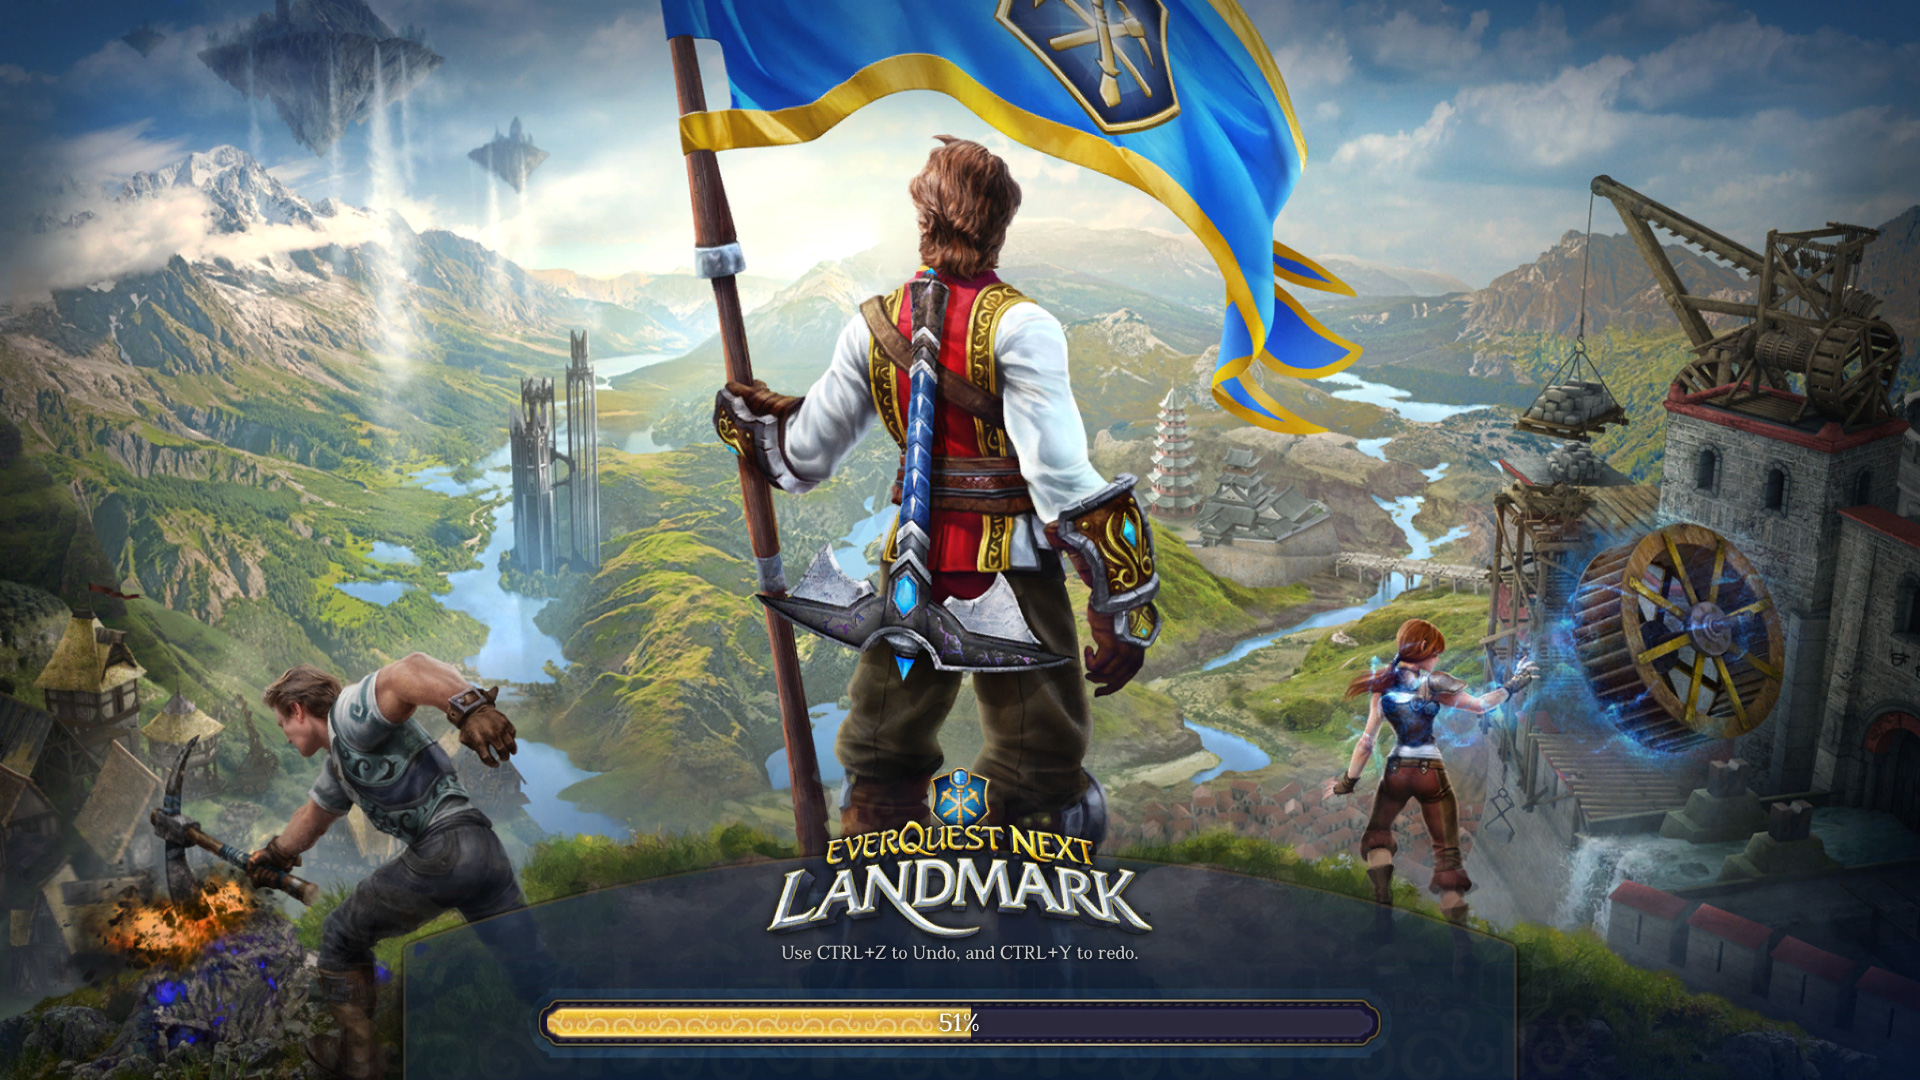 EverQuest Next Landmark FAQ - R4PG.com